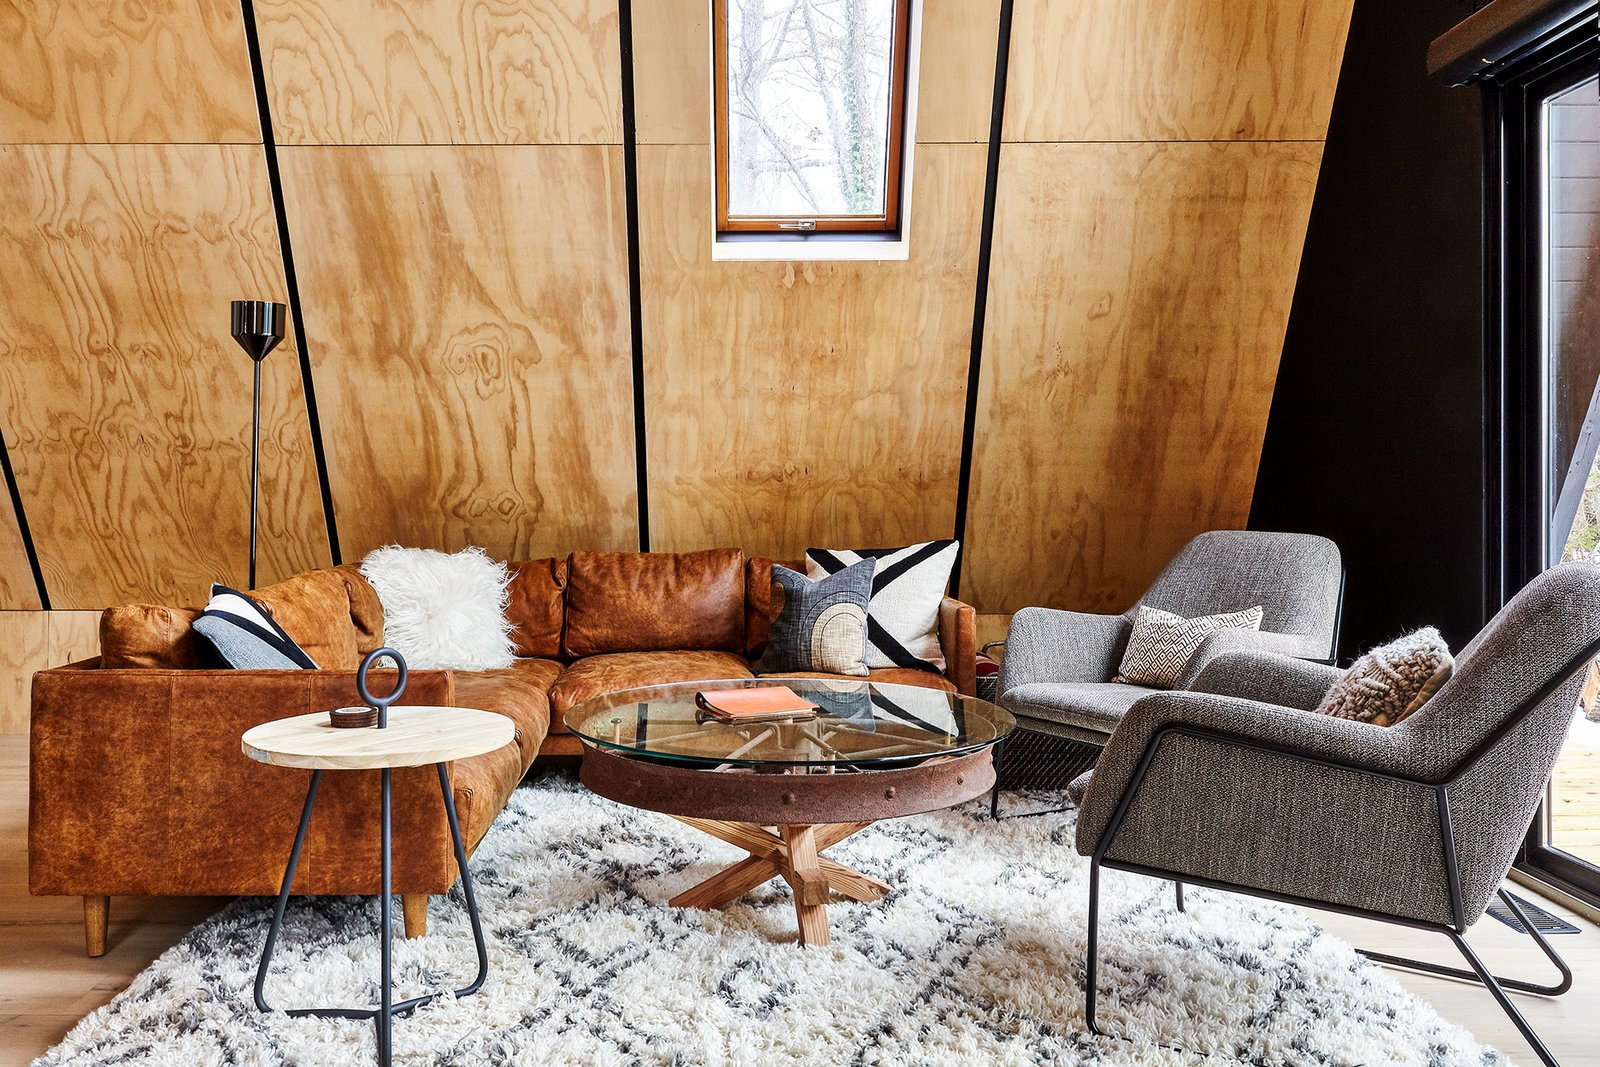 Living Room, Light Hardwood Floor, Sectional, Coffee Tables, Floor Lighting, End Tables, Chair, Lamps, and Rug Floor Living room with furnishings by Article & custom wagon wheel table by Ovuud  Lokal A-Frame